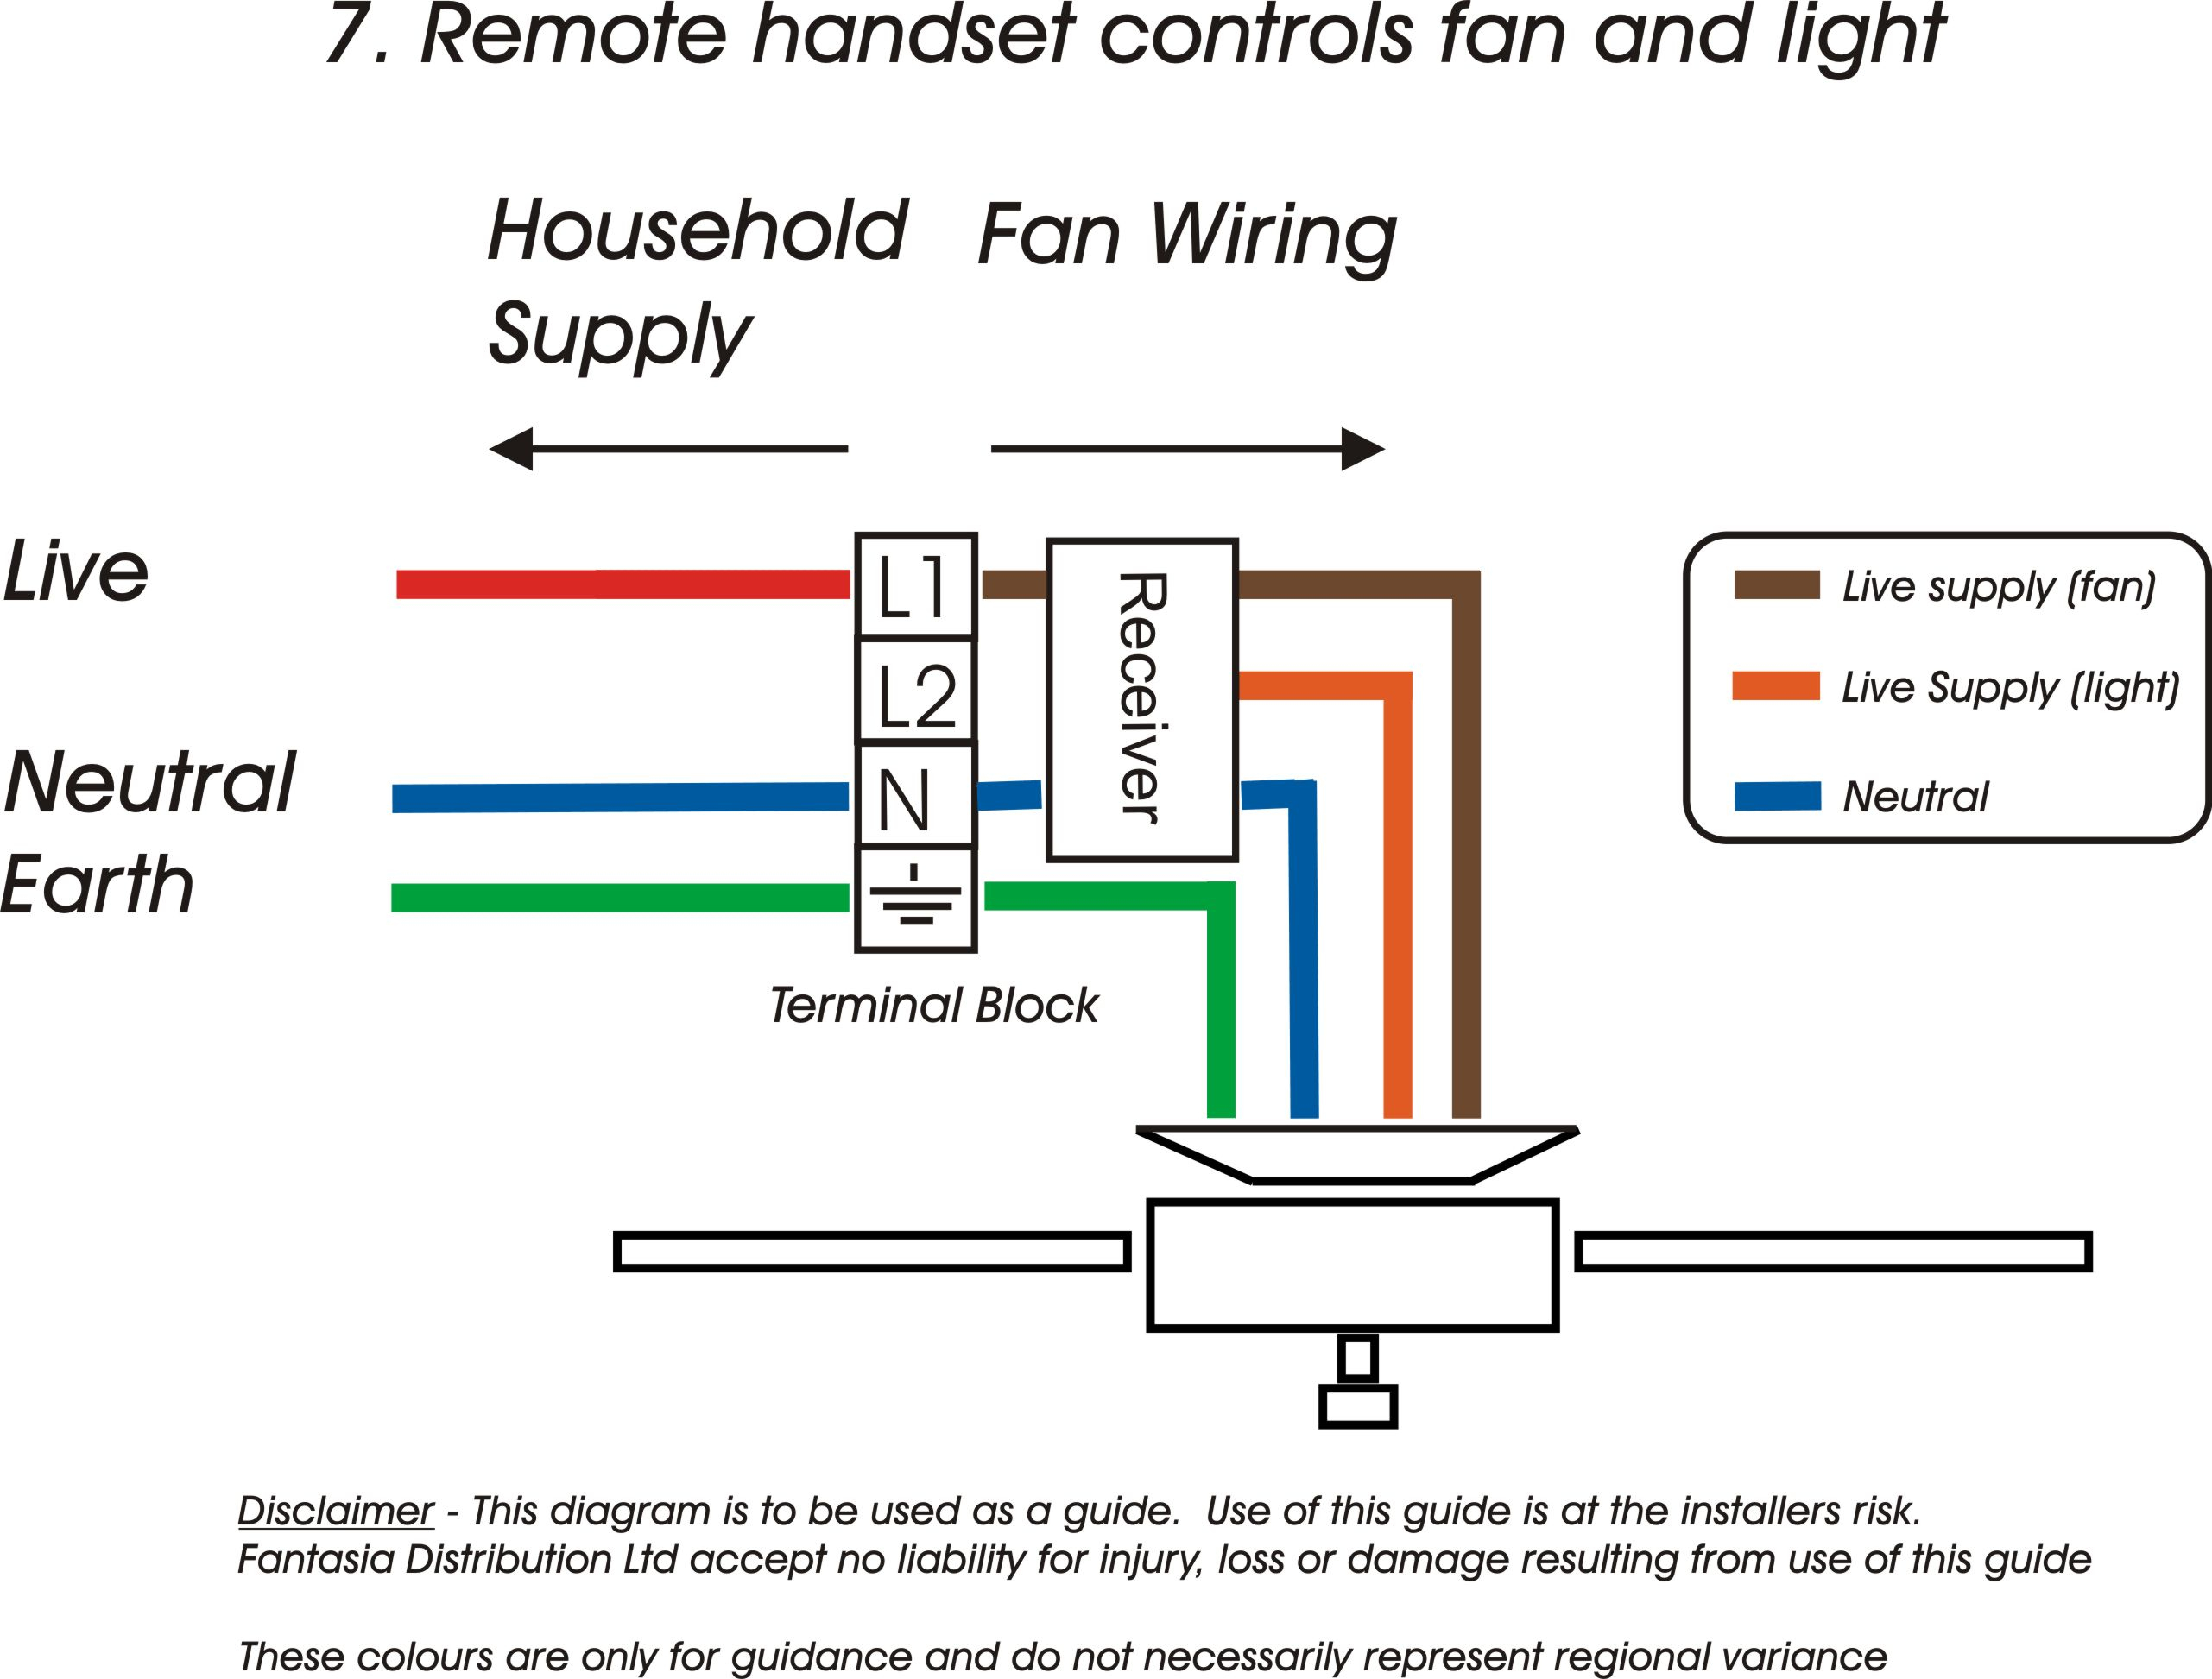 Wiring Diagram For Ceiling Fan With Light Uk   Wiring Diagram - Wiring Diagram For Ceiling Fan With Light